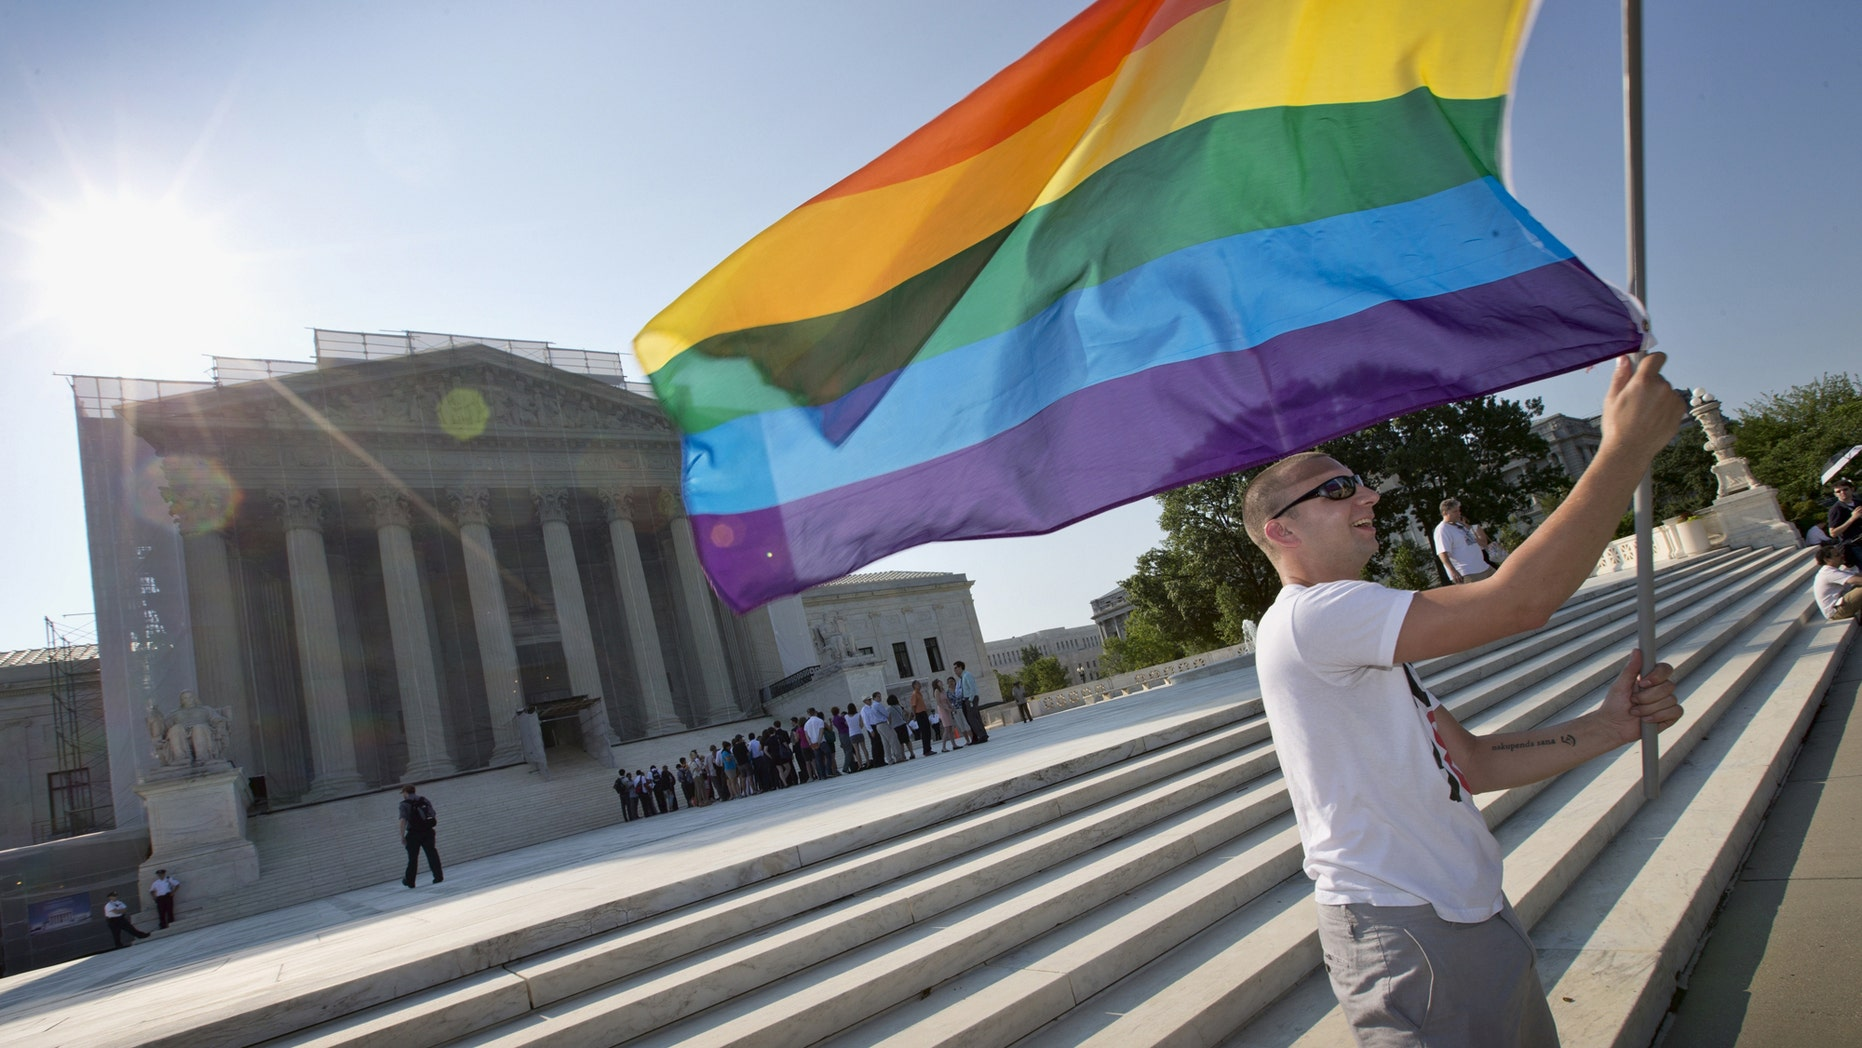 FILE - In this June 25, 2013 file photo, Vin Testa of Washington waves a rainbow flag in support of gay rights outside the Supreme Court in Washington.  The Supreme Court will hear arguments over same-sex marriage on April 28 and make audio of the proceedings available later that day. The gay marriage cases mark the only time this term that the court has agreed to the quick release of audio recordings. But the court is continuing its ban on providing video of its sessions or even live-streamed audio. (AP Photo/J. Scott Applewhite, File)